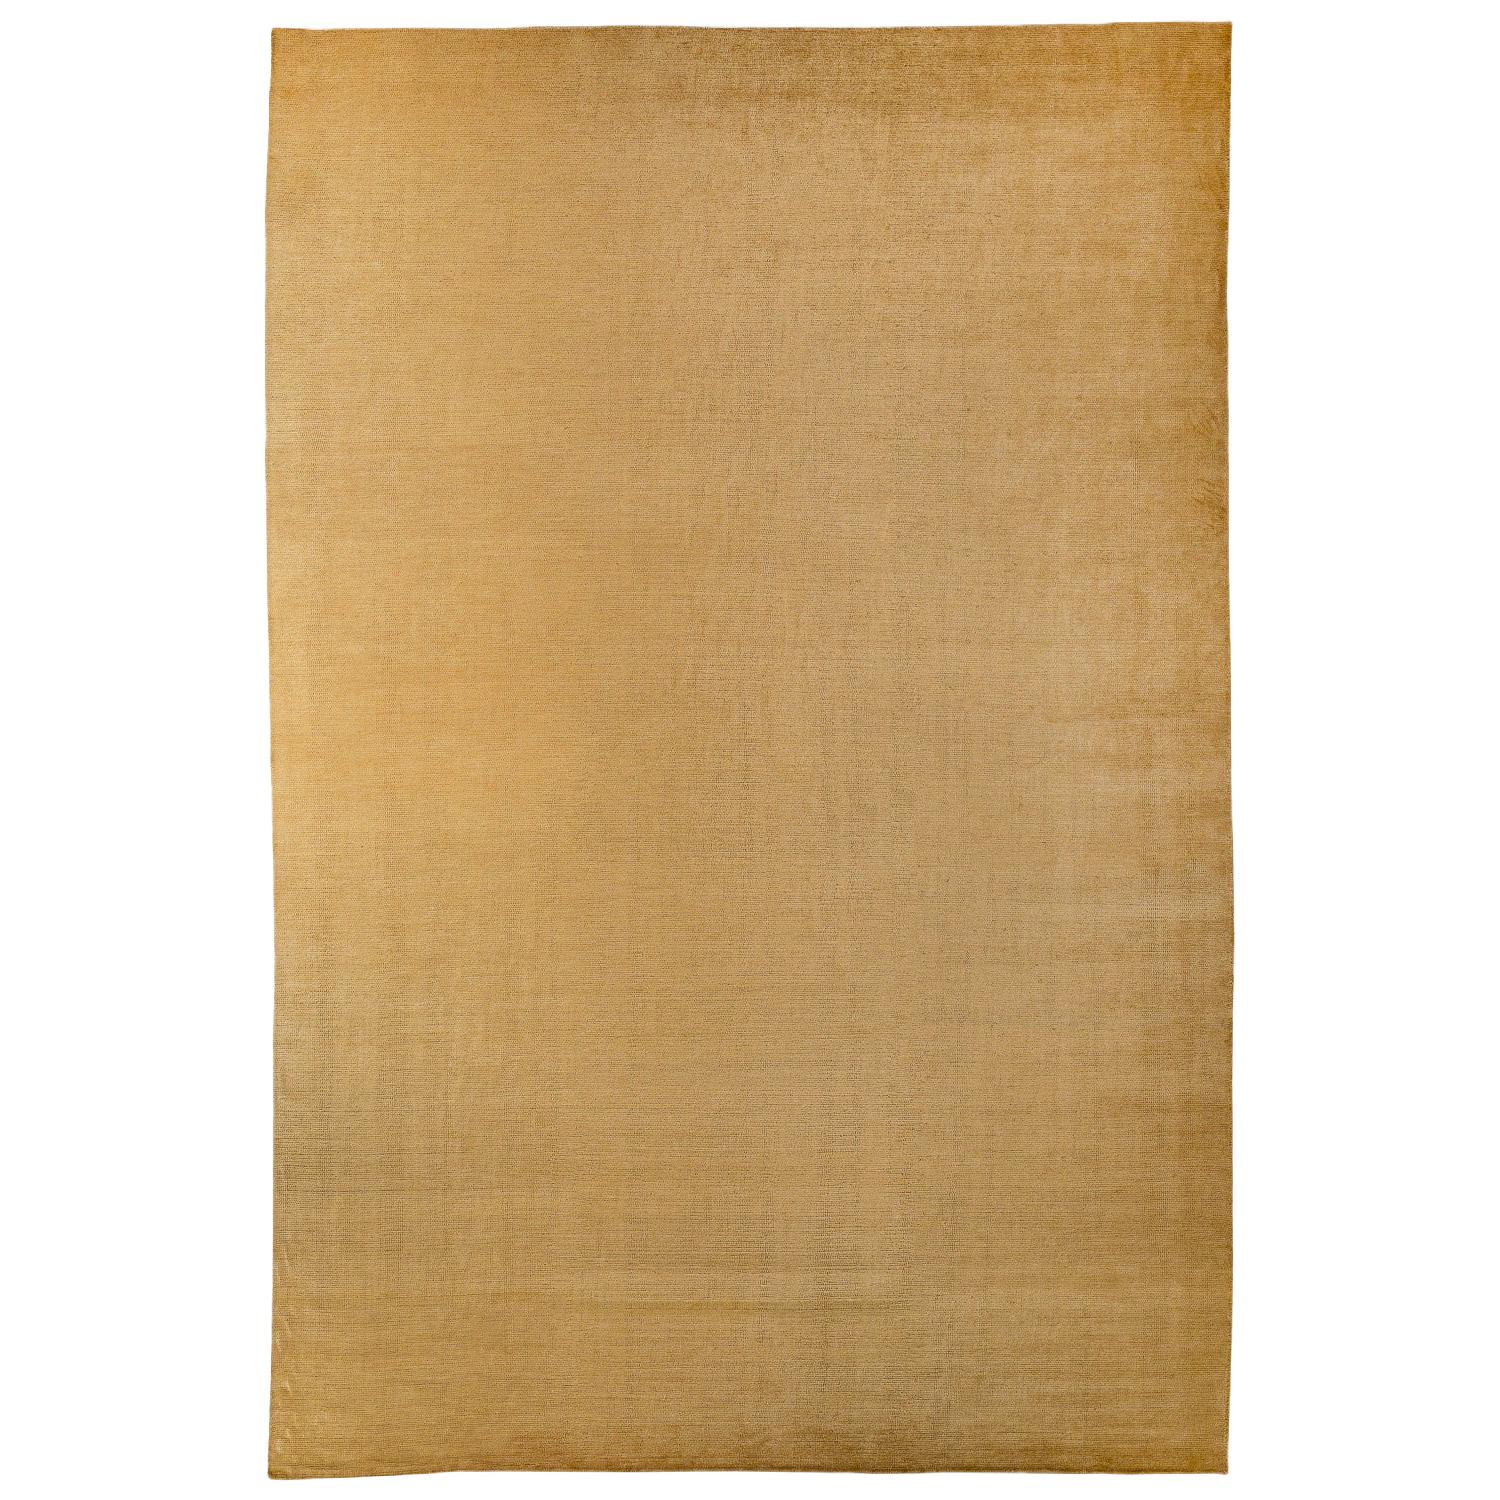 Solid Gold Handwoven Mohair Area Rug by Carini